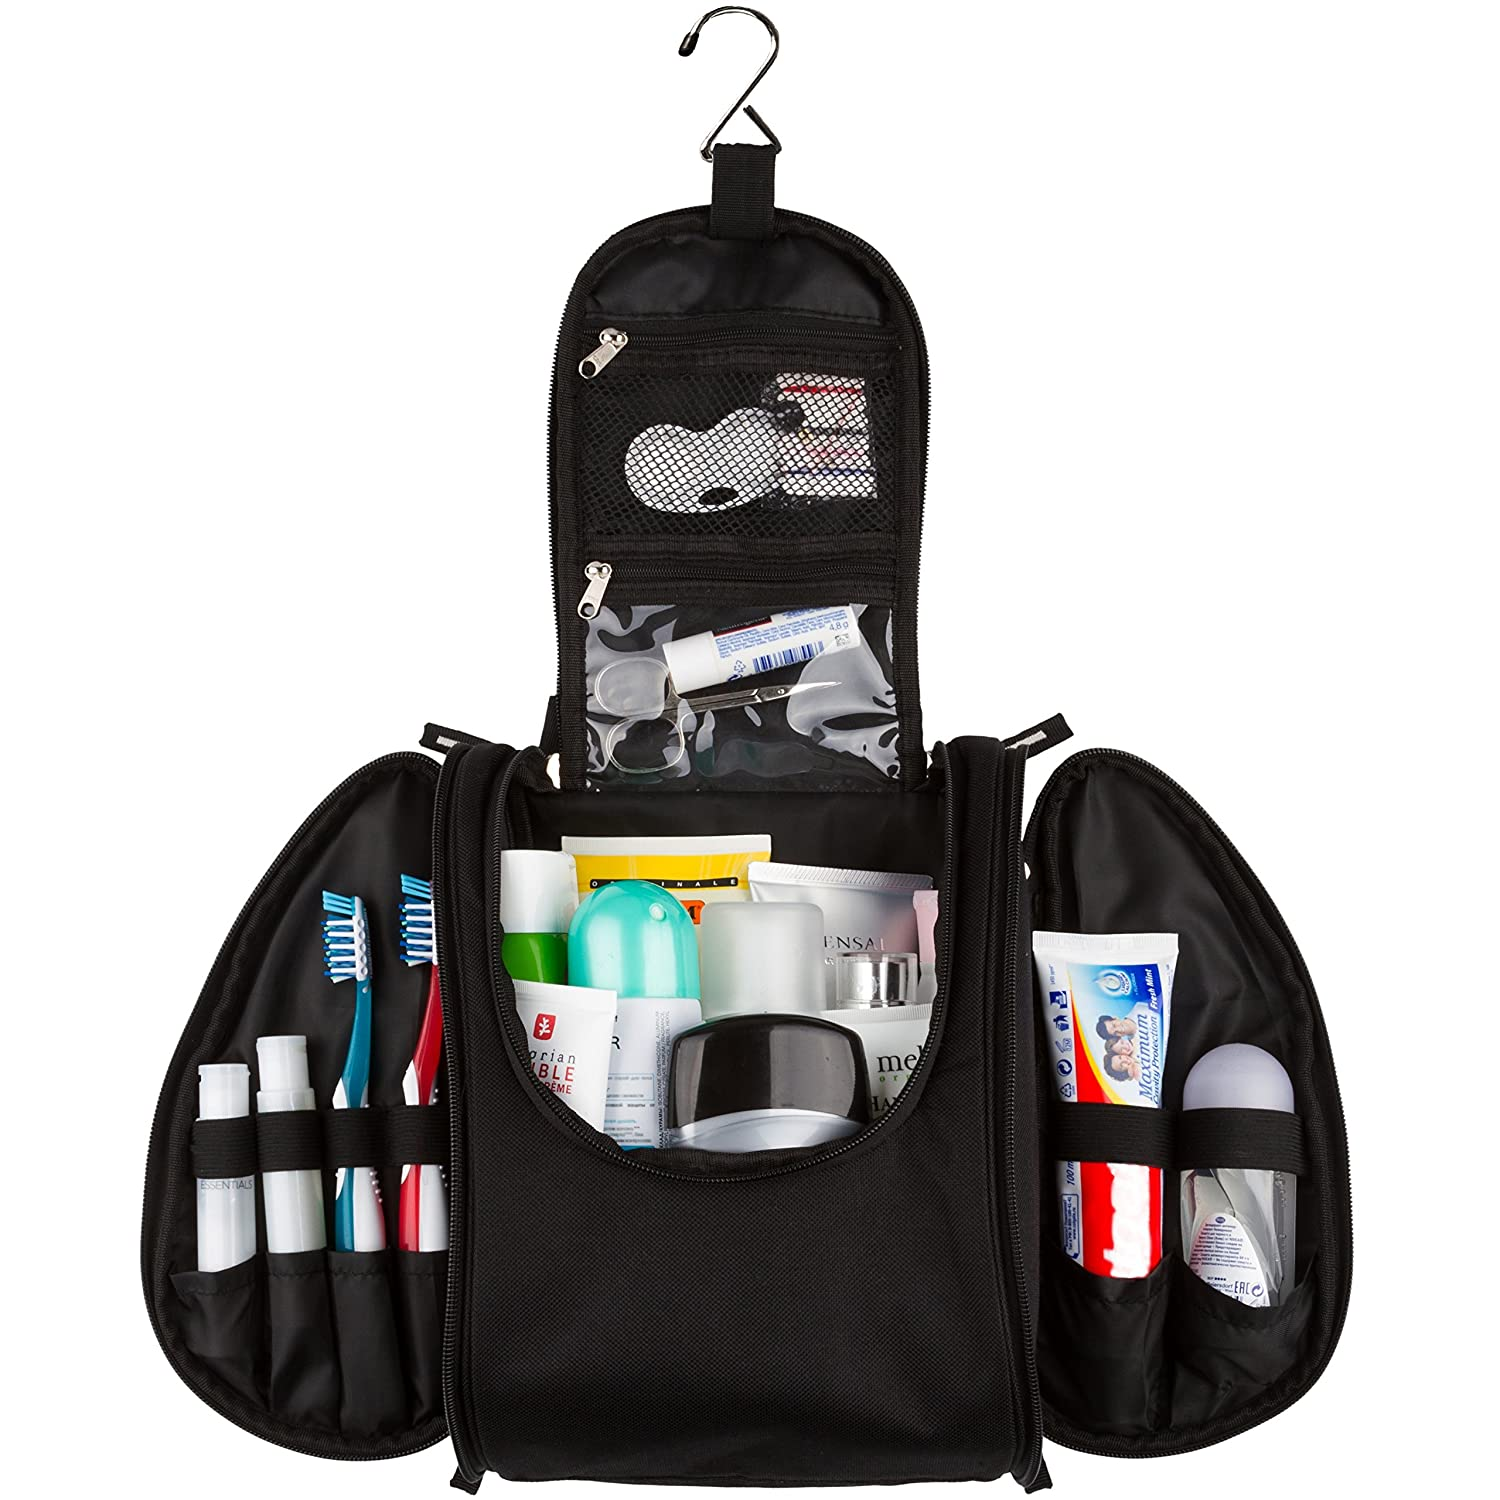 42 Travel - Hanging Toiletry Bag for Travel Accessories (UPGRADED) 42Travel